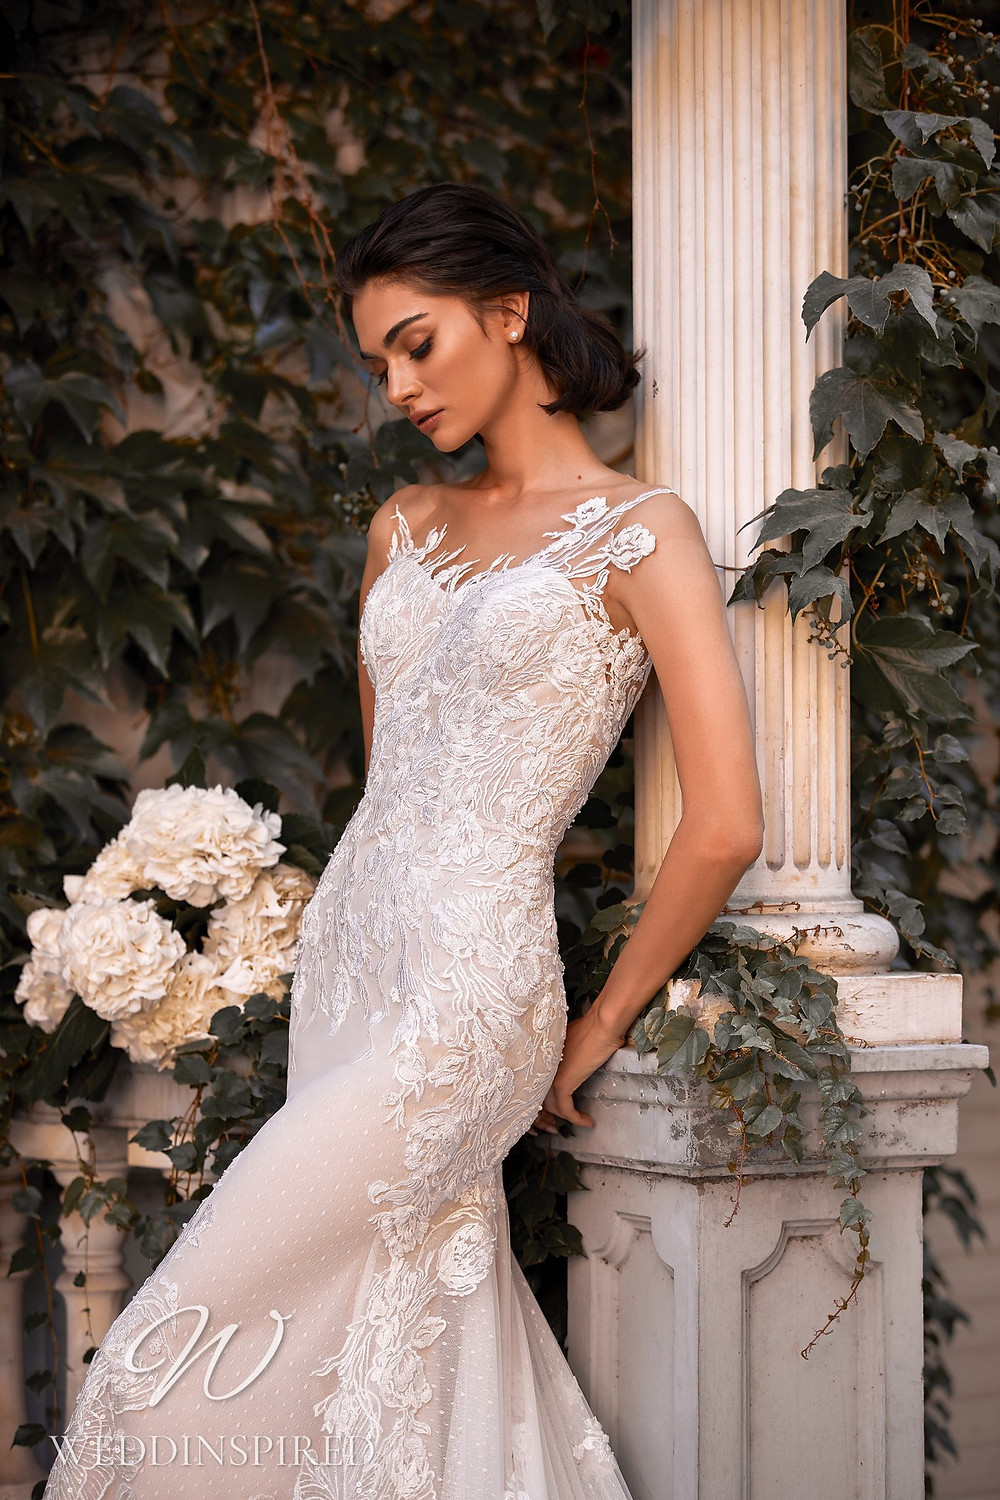 A Daria Karlozi 2021 lace and tulle mermaid wedding dress